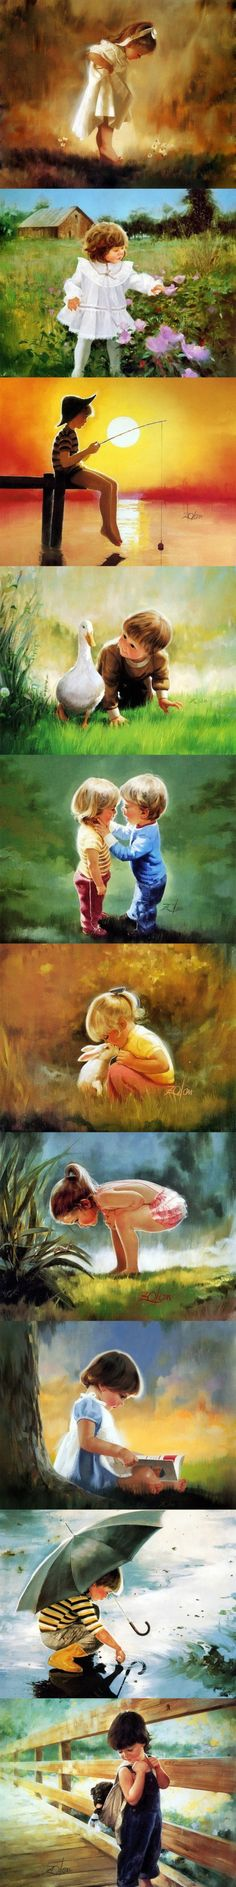 Donald Zolan Golden childhood Oil Painting